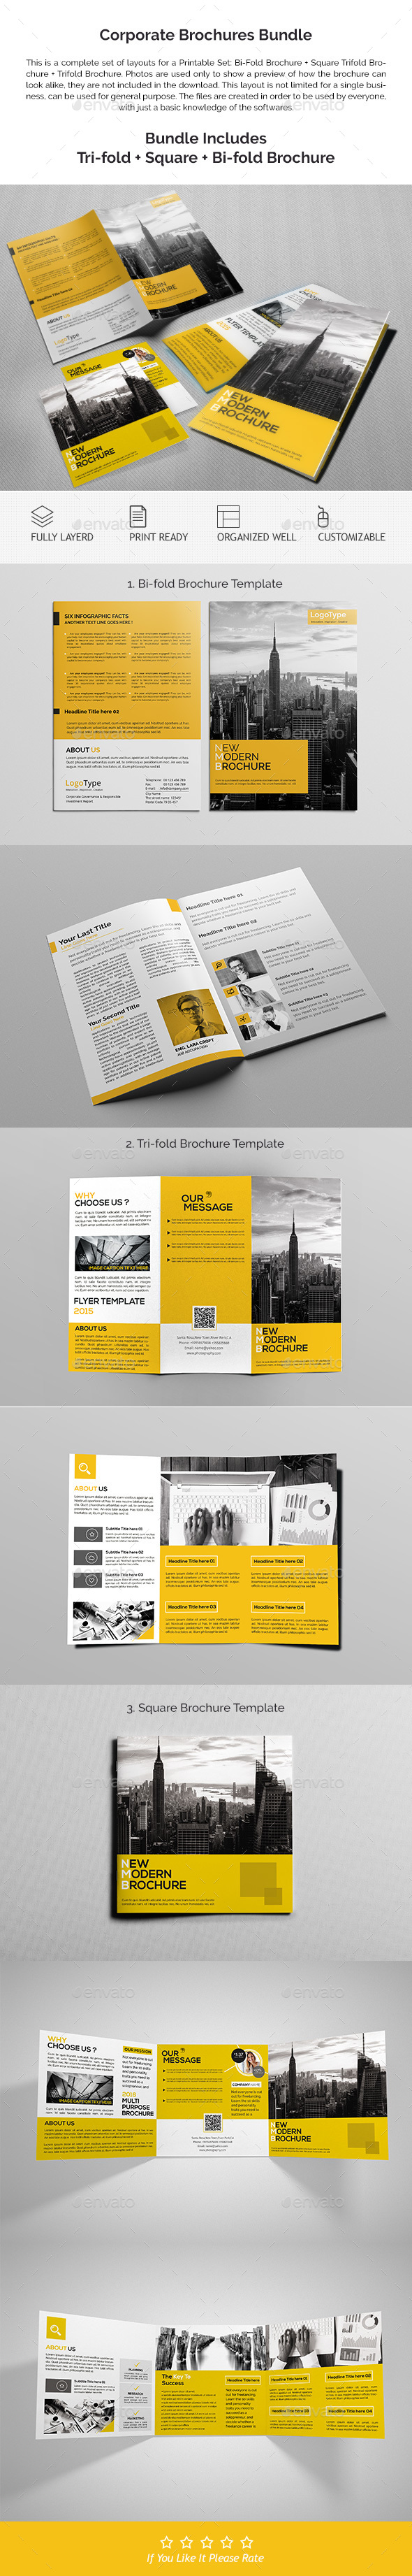 Corporate Brochures Bundle 03 - Corporate Brochures